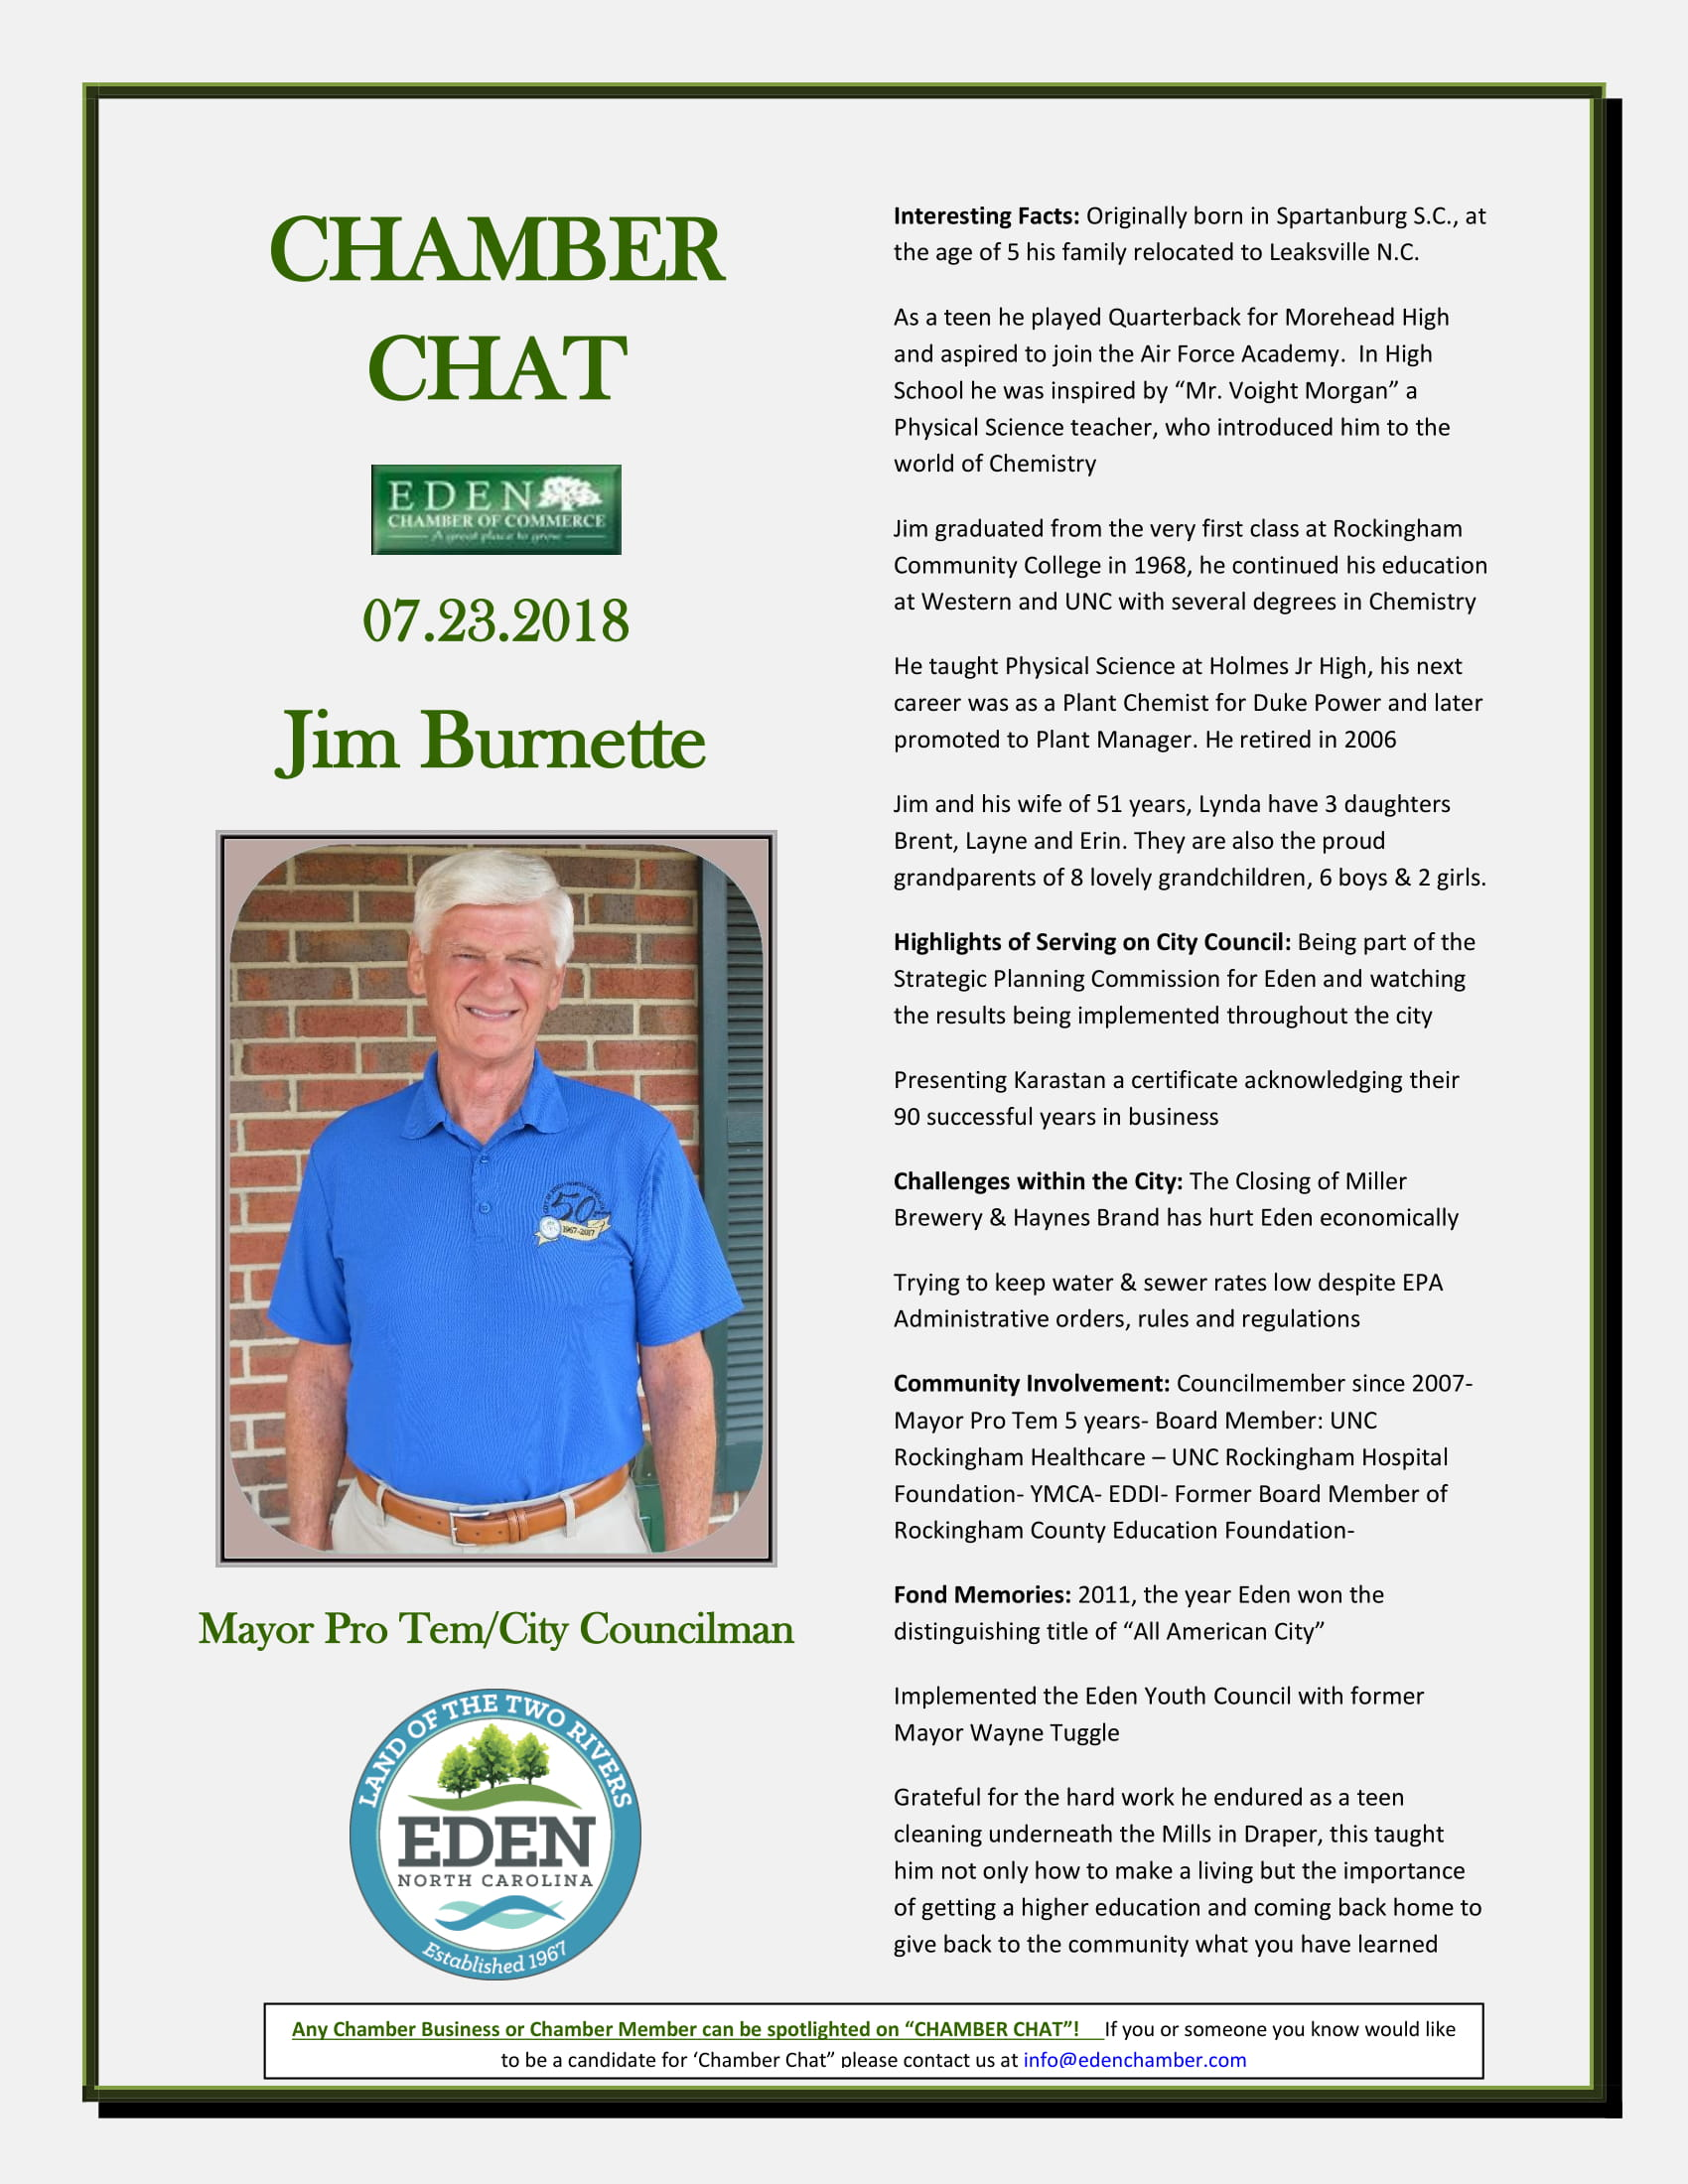 CHAMBER-CHAT--Jim-Burnette-07.23.18-1.jpg